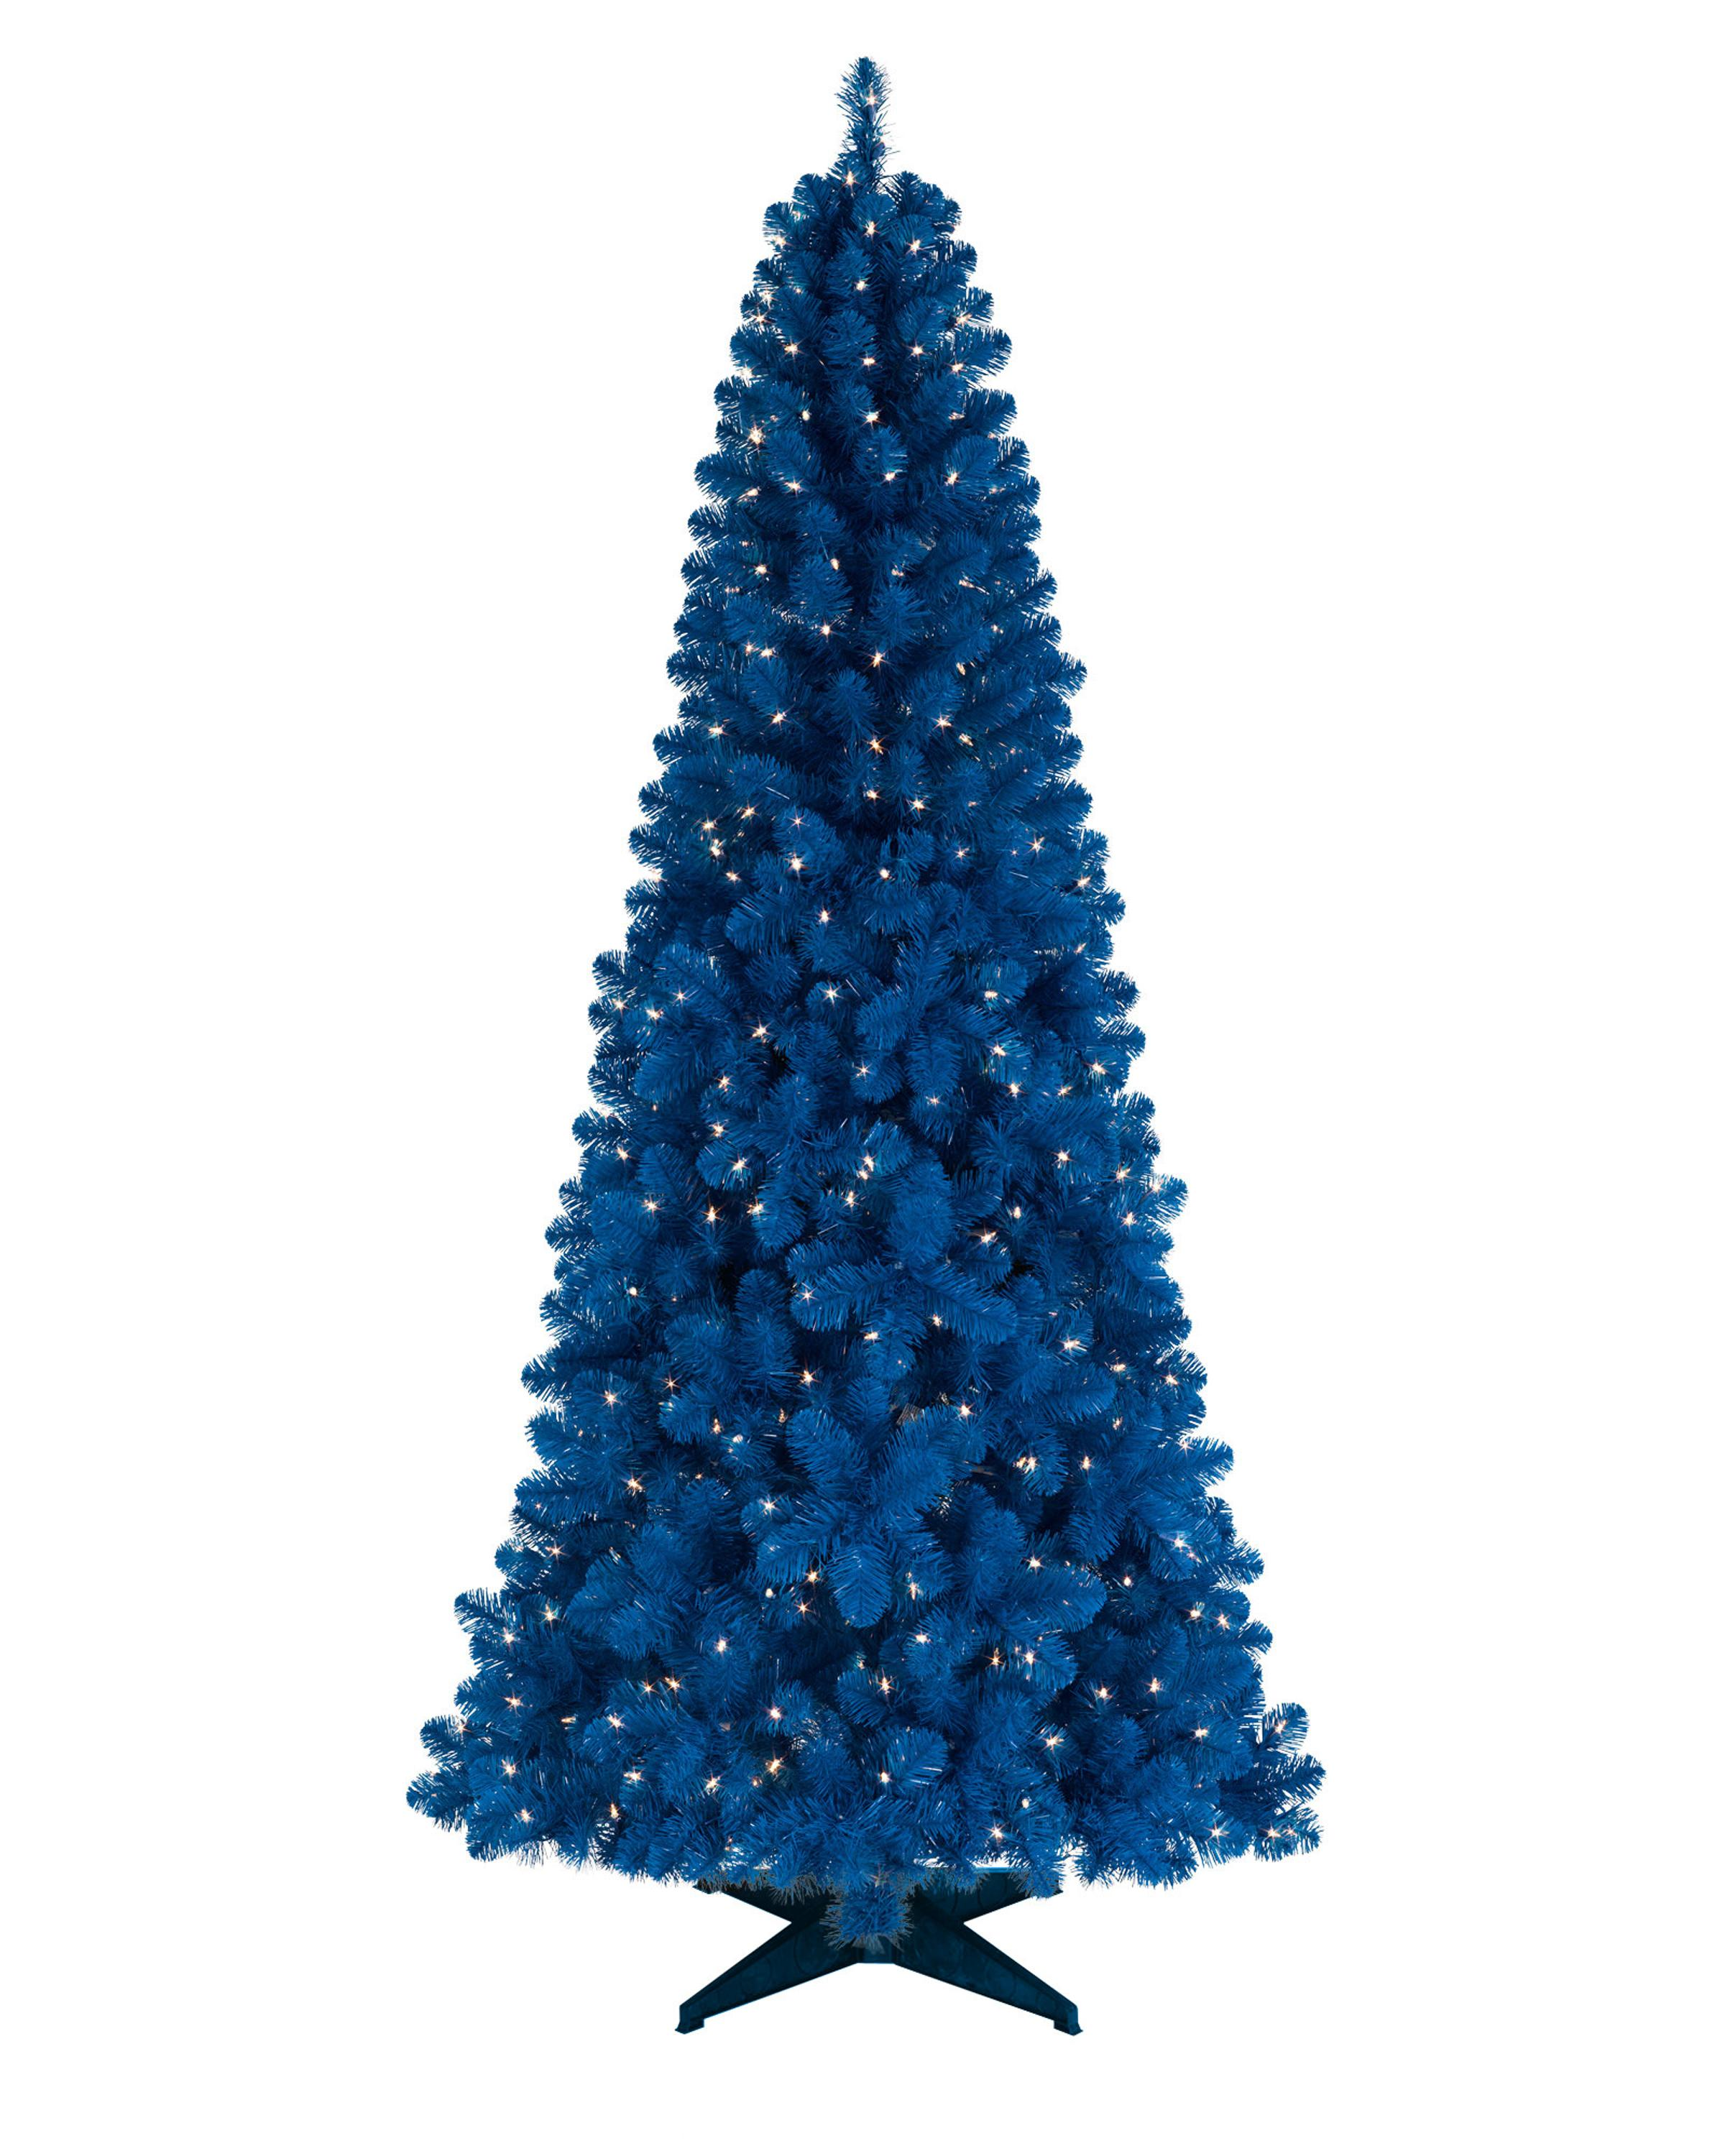 7 5 Blue Artificial Christmas Tree With Light Rs20145621 Buy Outdoor Artificial Christmas Trees Mini Led Christmas Tree Cheap Artificial Christmas Trees Product On Alibaba Com